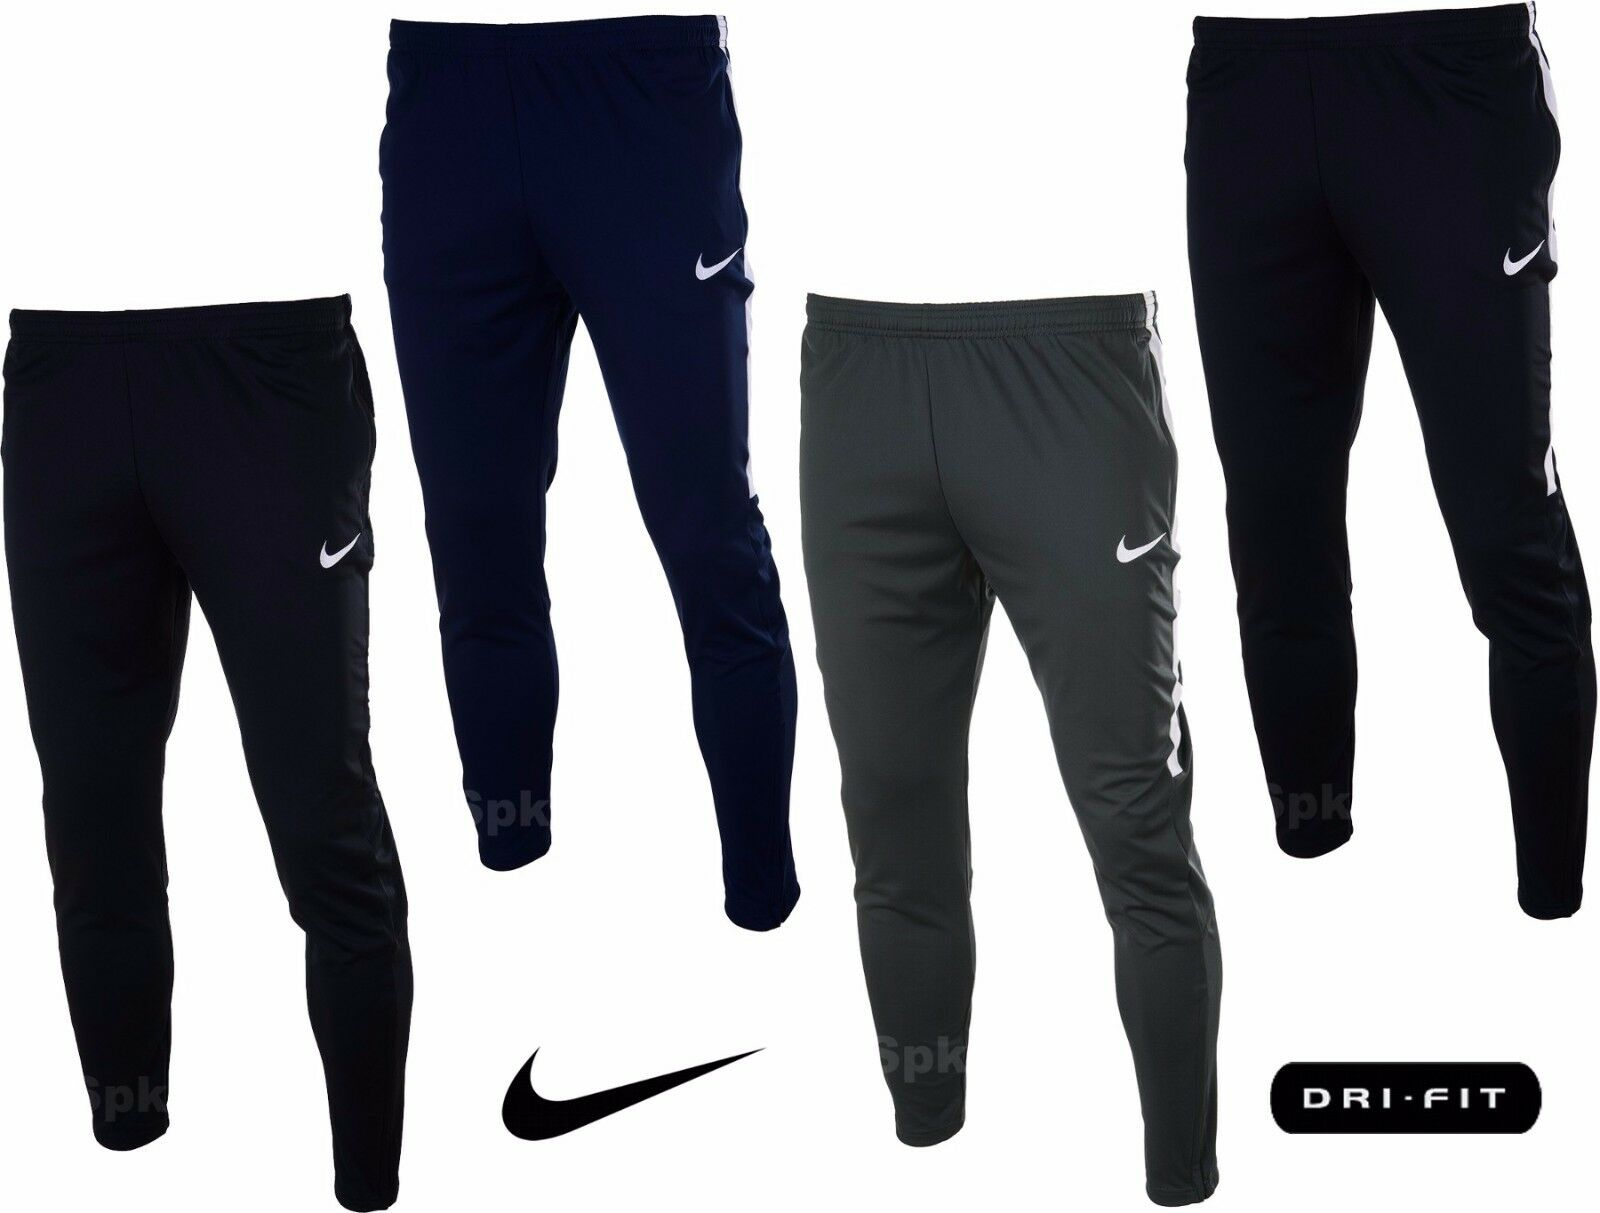 nike mens training tracksuit slim bottoms pants exercise football running sports. Black Bedroom Furniture Sets. Home Design Ideas